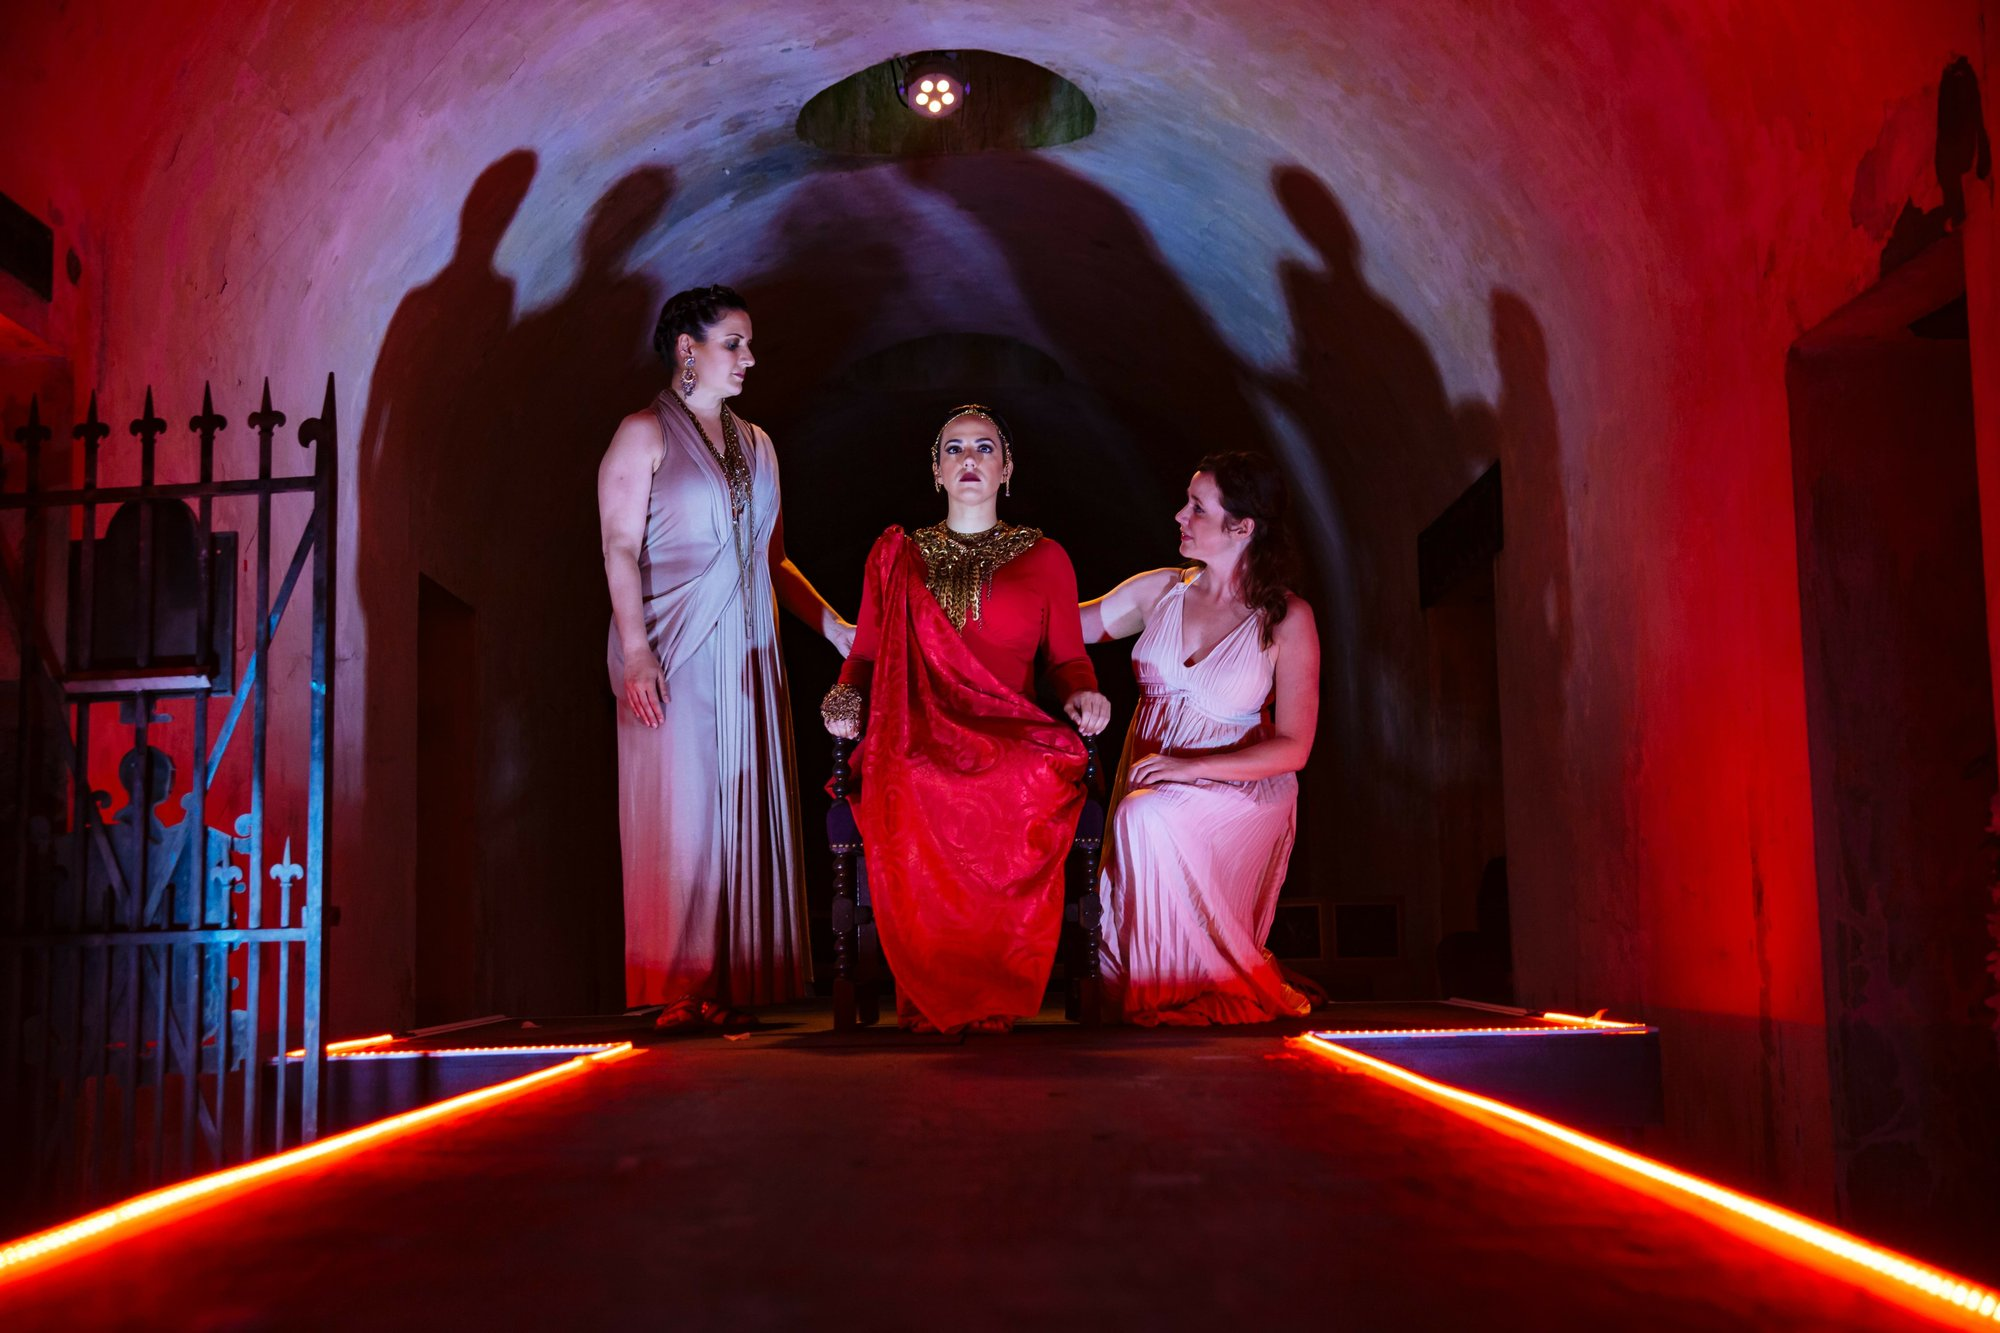 Purcell opera performed in cemetery catacombs